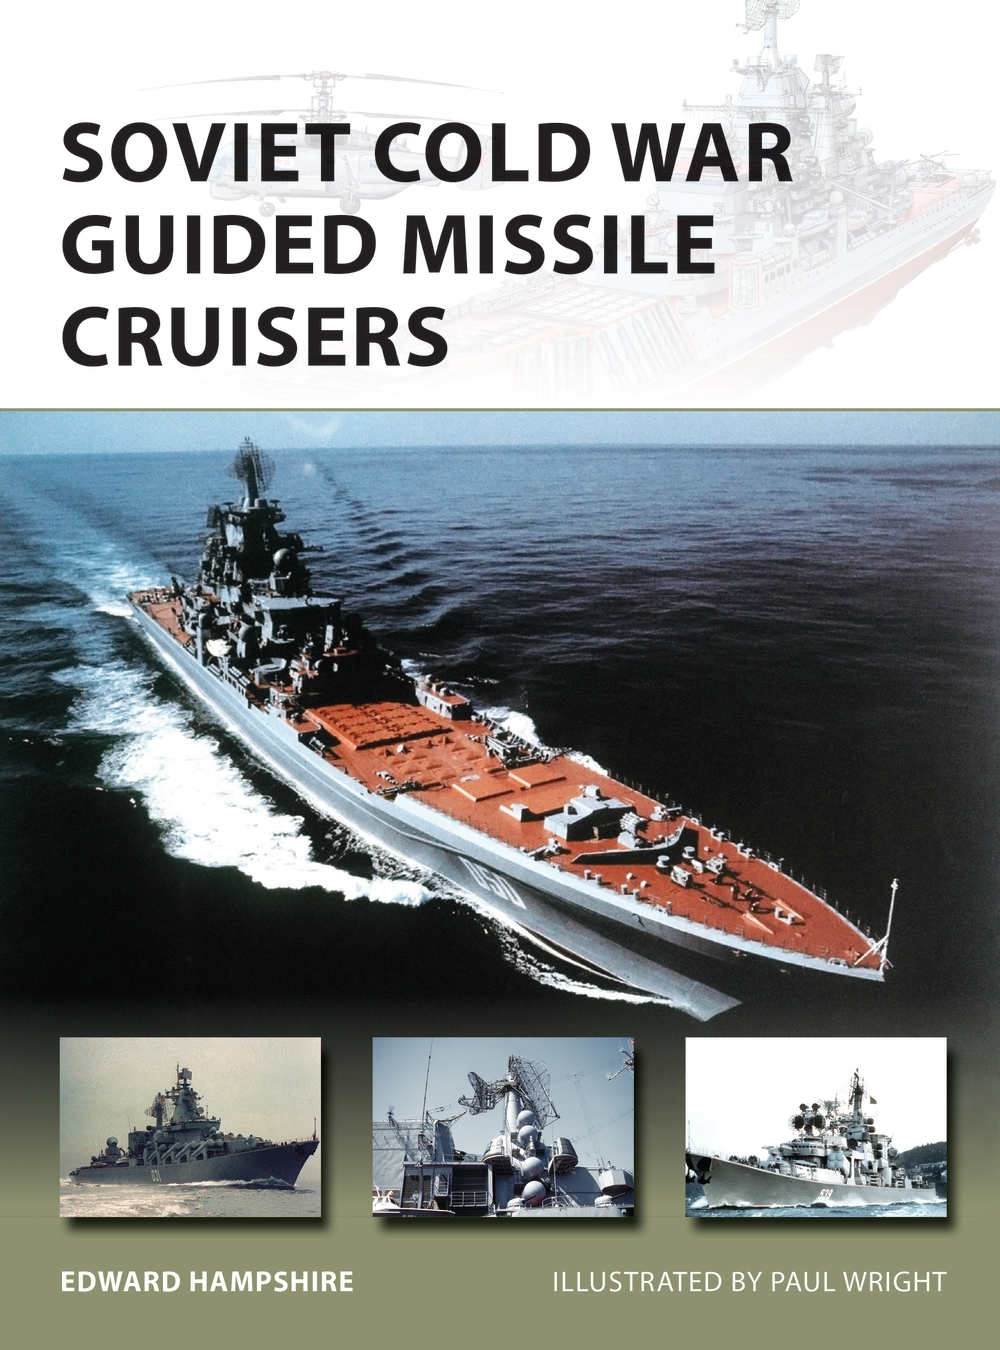 Cold war missile cruisers